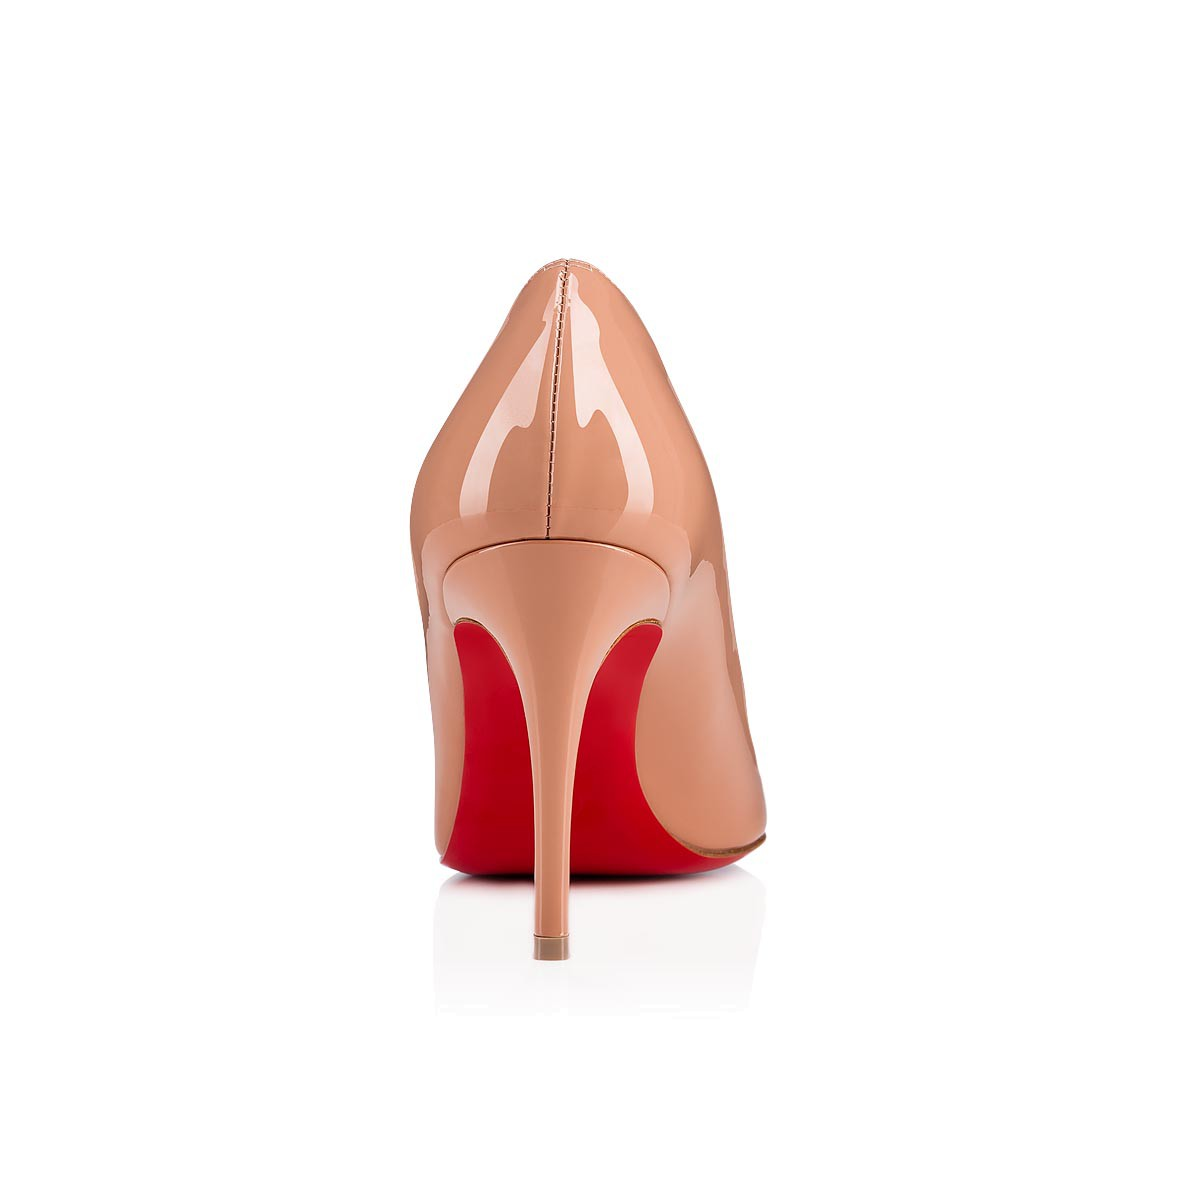 ウィメンズシューズ - Simple Pump - Christian Louboutin